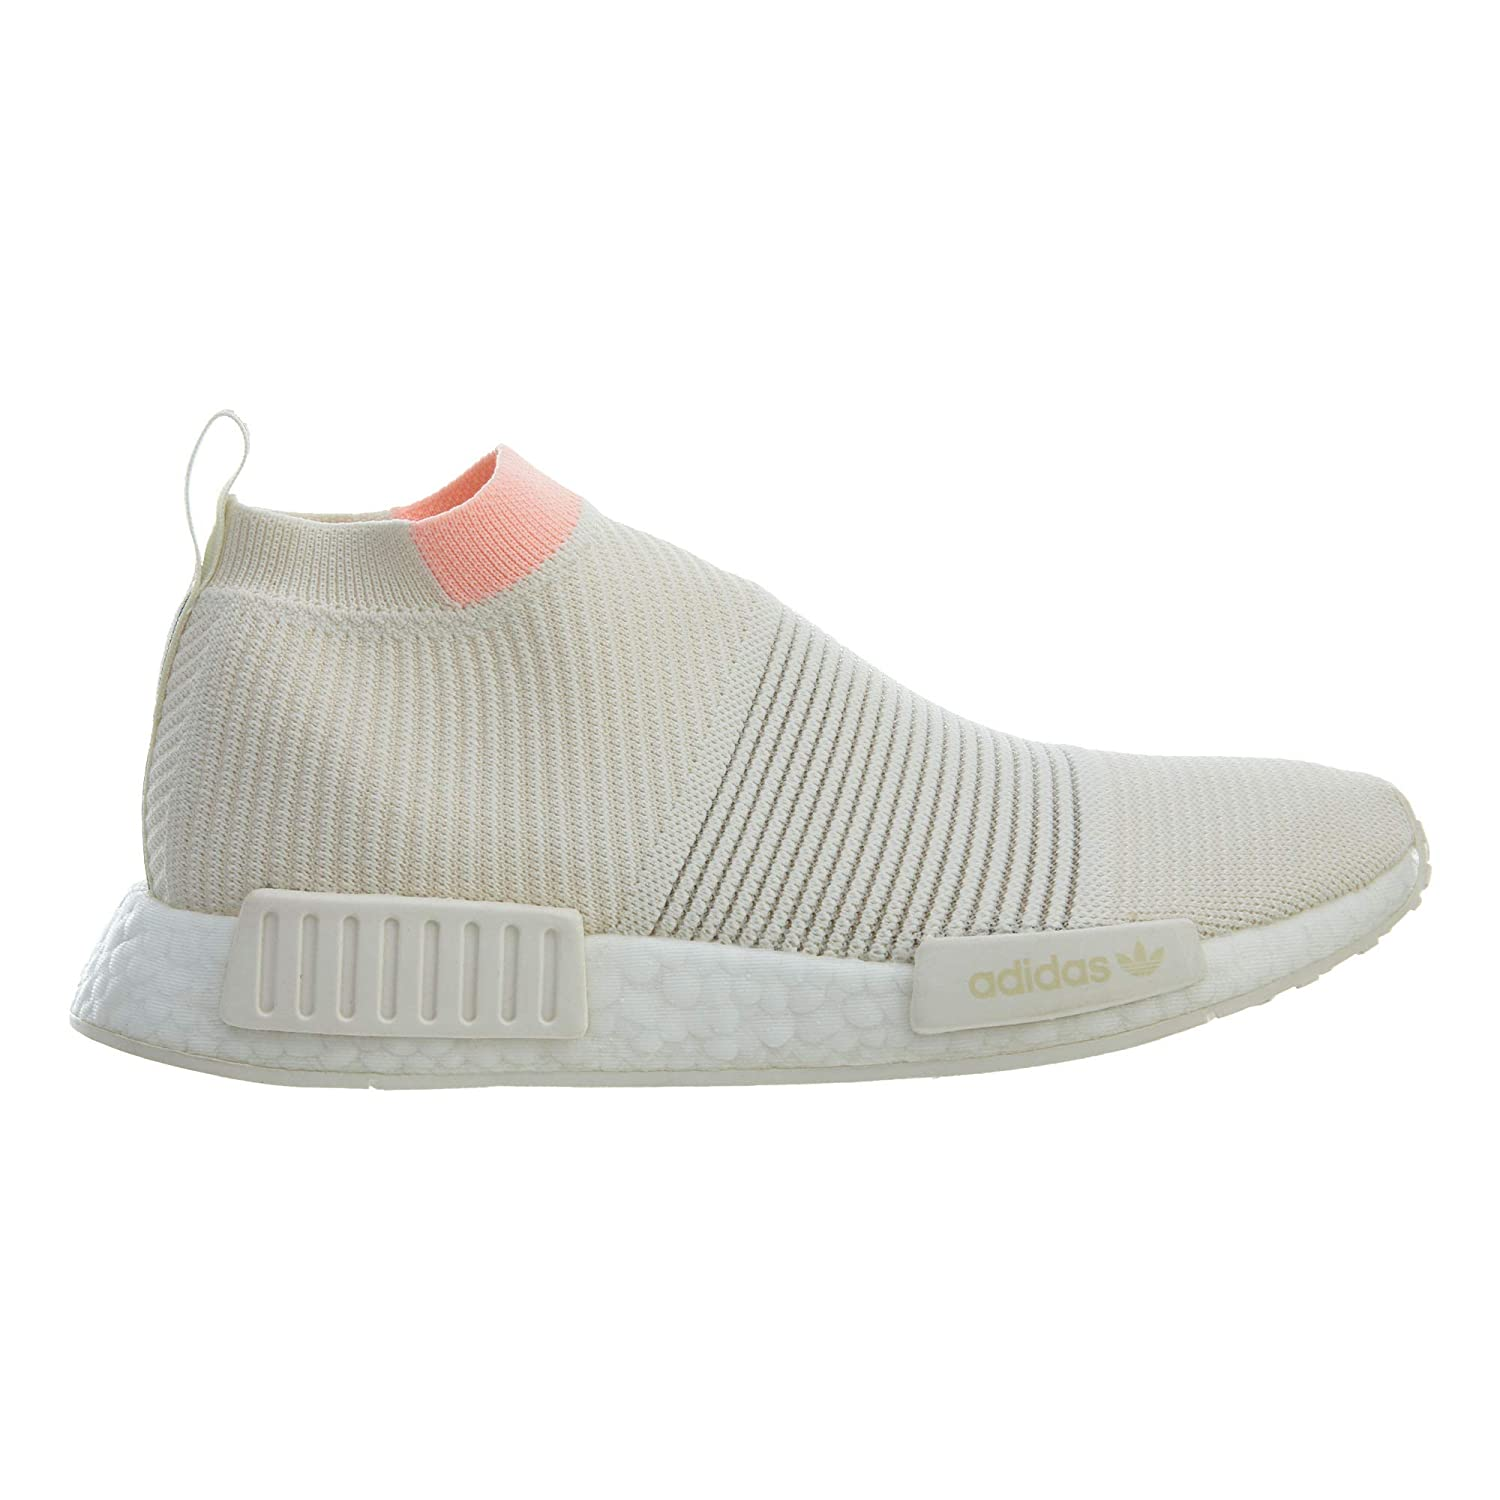 Consecutivo Tranquilidad de espíritu Énfasis  Buy Adidas Women's NMD_Cs1 Pk Running White Clear Orange Aq1136 6 M US  Footwear White/Clear Orange at Amazon.in